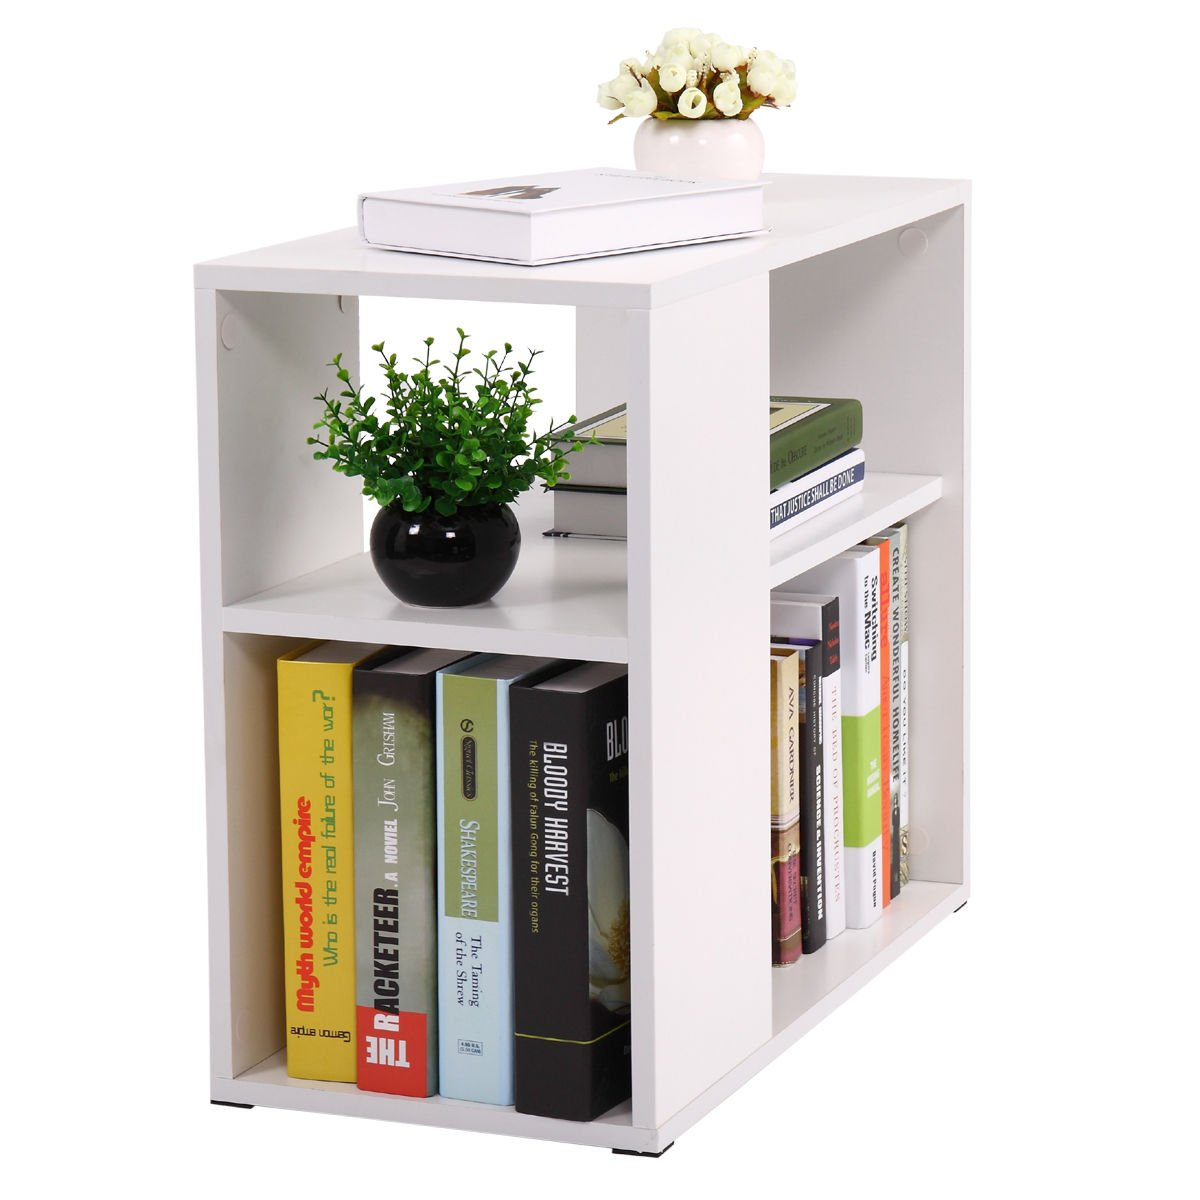 Side Sofa Table Coffee Tray Ottoman Couch Console Stand End Magazine Organizer White by Eramaix (Image #5)